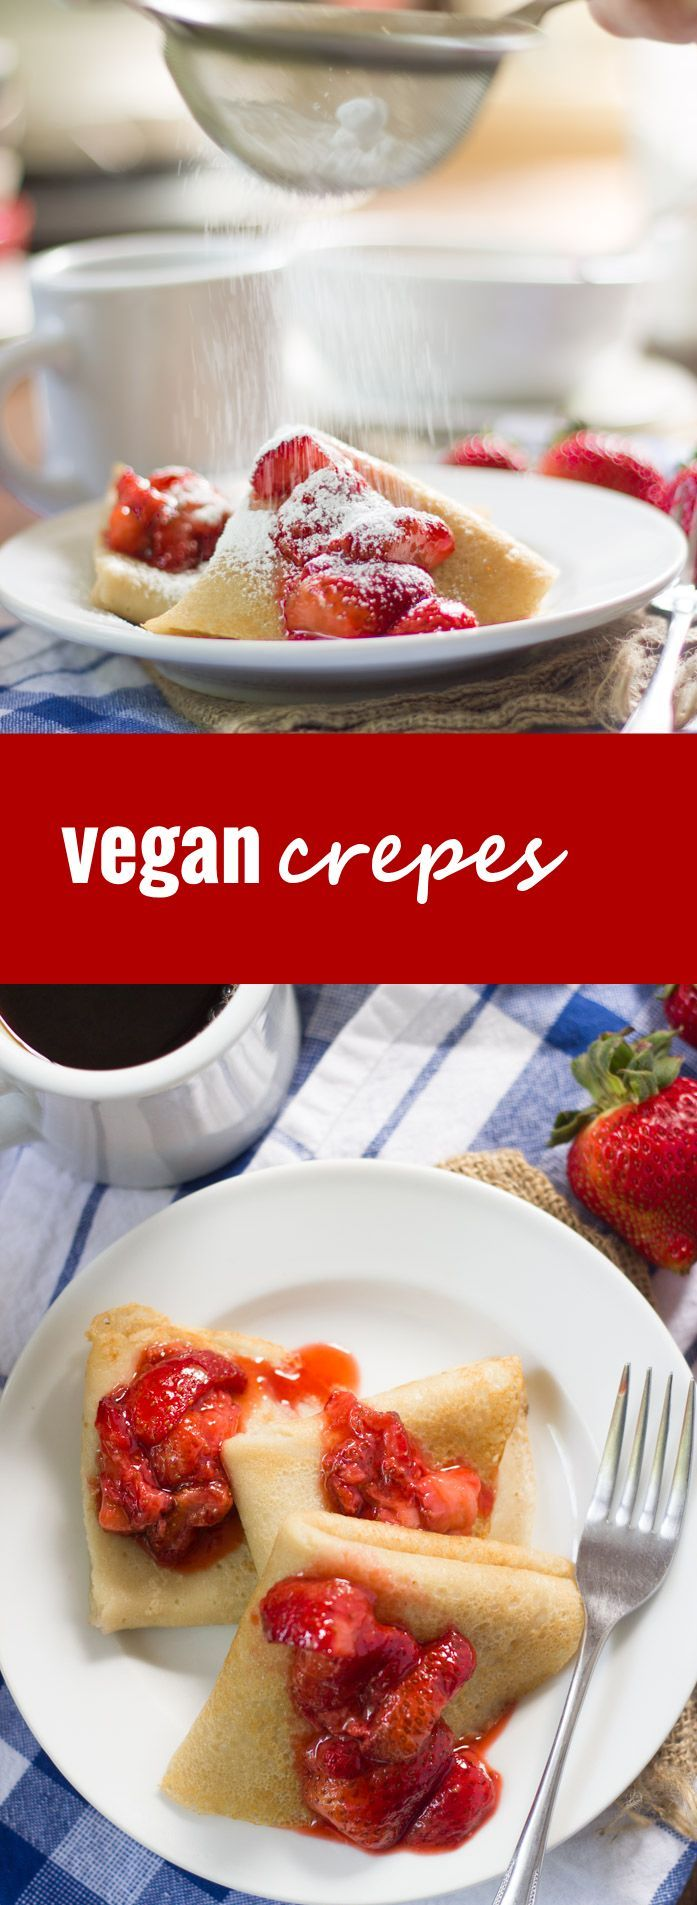 These vegan crepes are super easy to make, and can be eaten as part of a sweet breakfast or stuffed with savory fillings for an elegant dinner.(Vegan Recipes Easy)